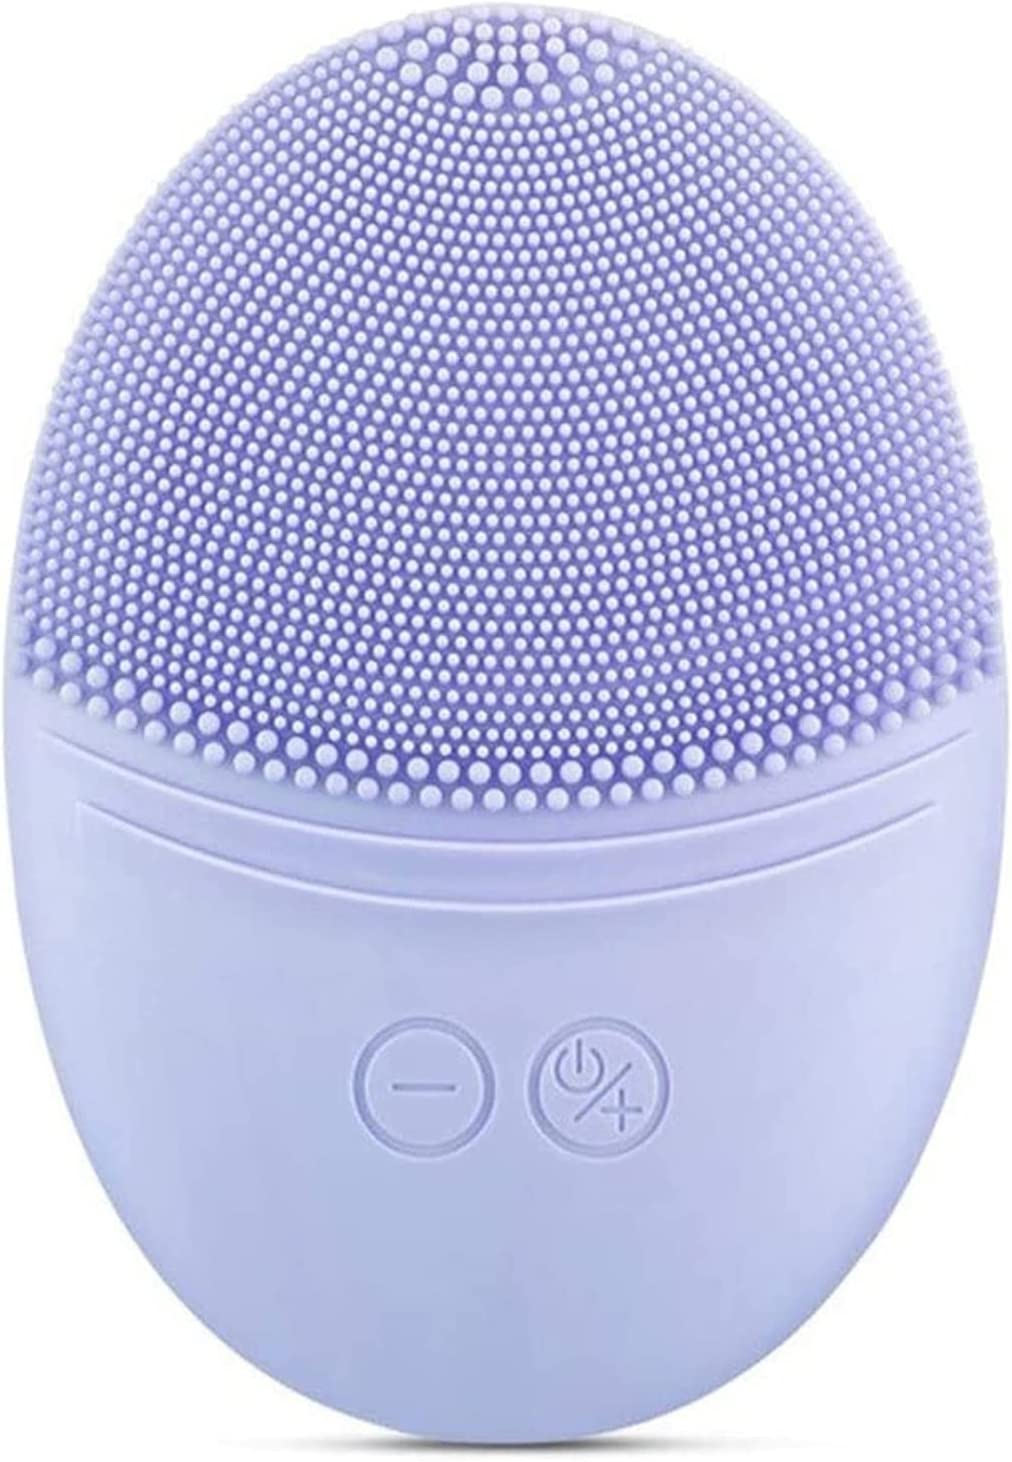 HKJZ SFLRW Silicone Challenge the lowest price Face Clean Scrubbers Brush-Facial Exfoliator Luxury goods